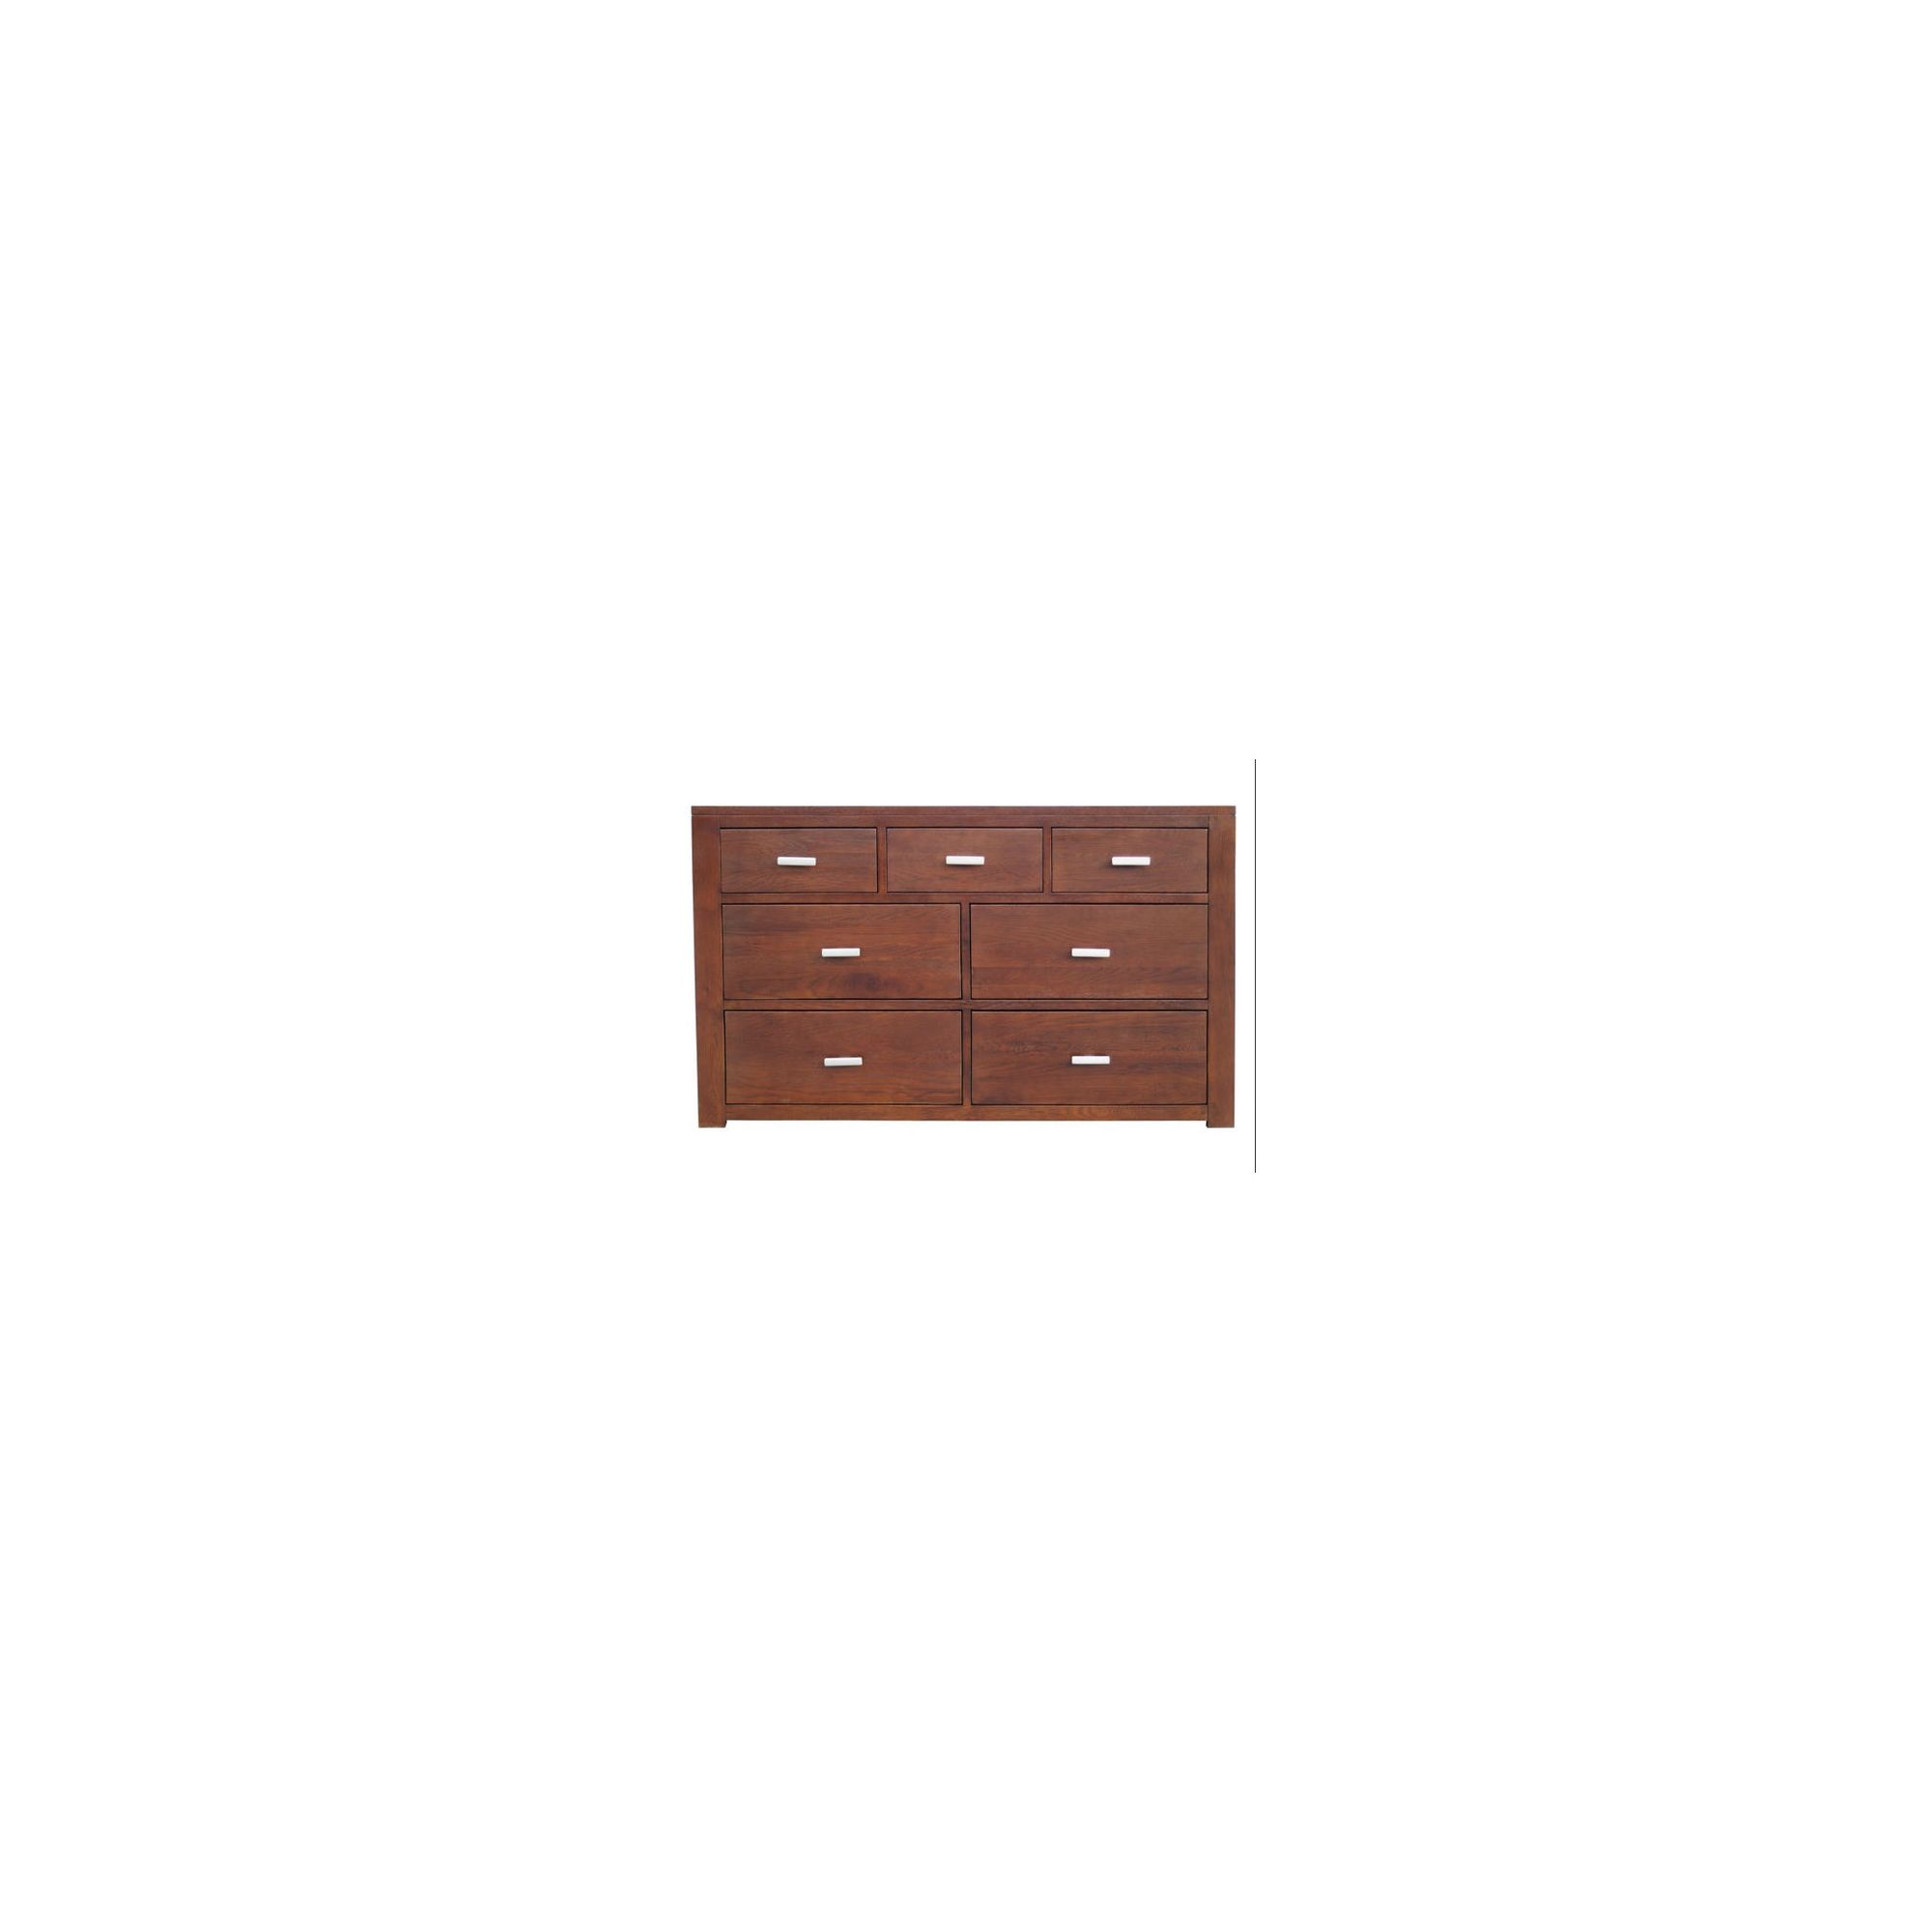 Home Zone Furniture Churchill Oak 2010 3 + 4 Chest of Drawers in Natural Oak at Tesco Direct